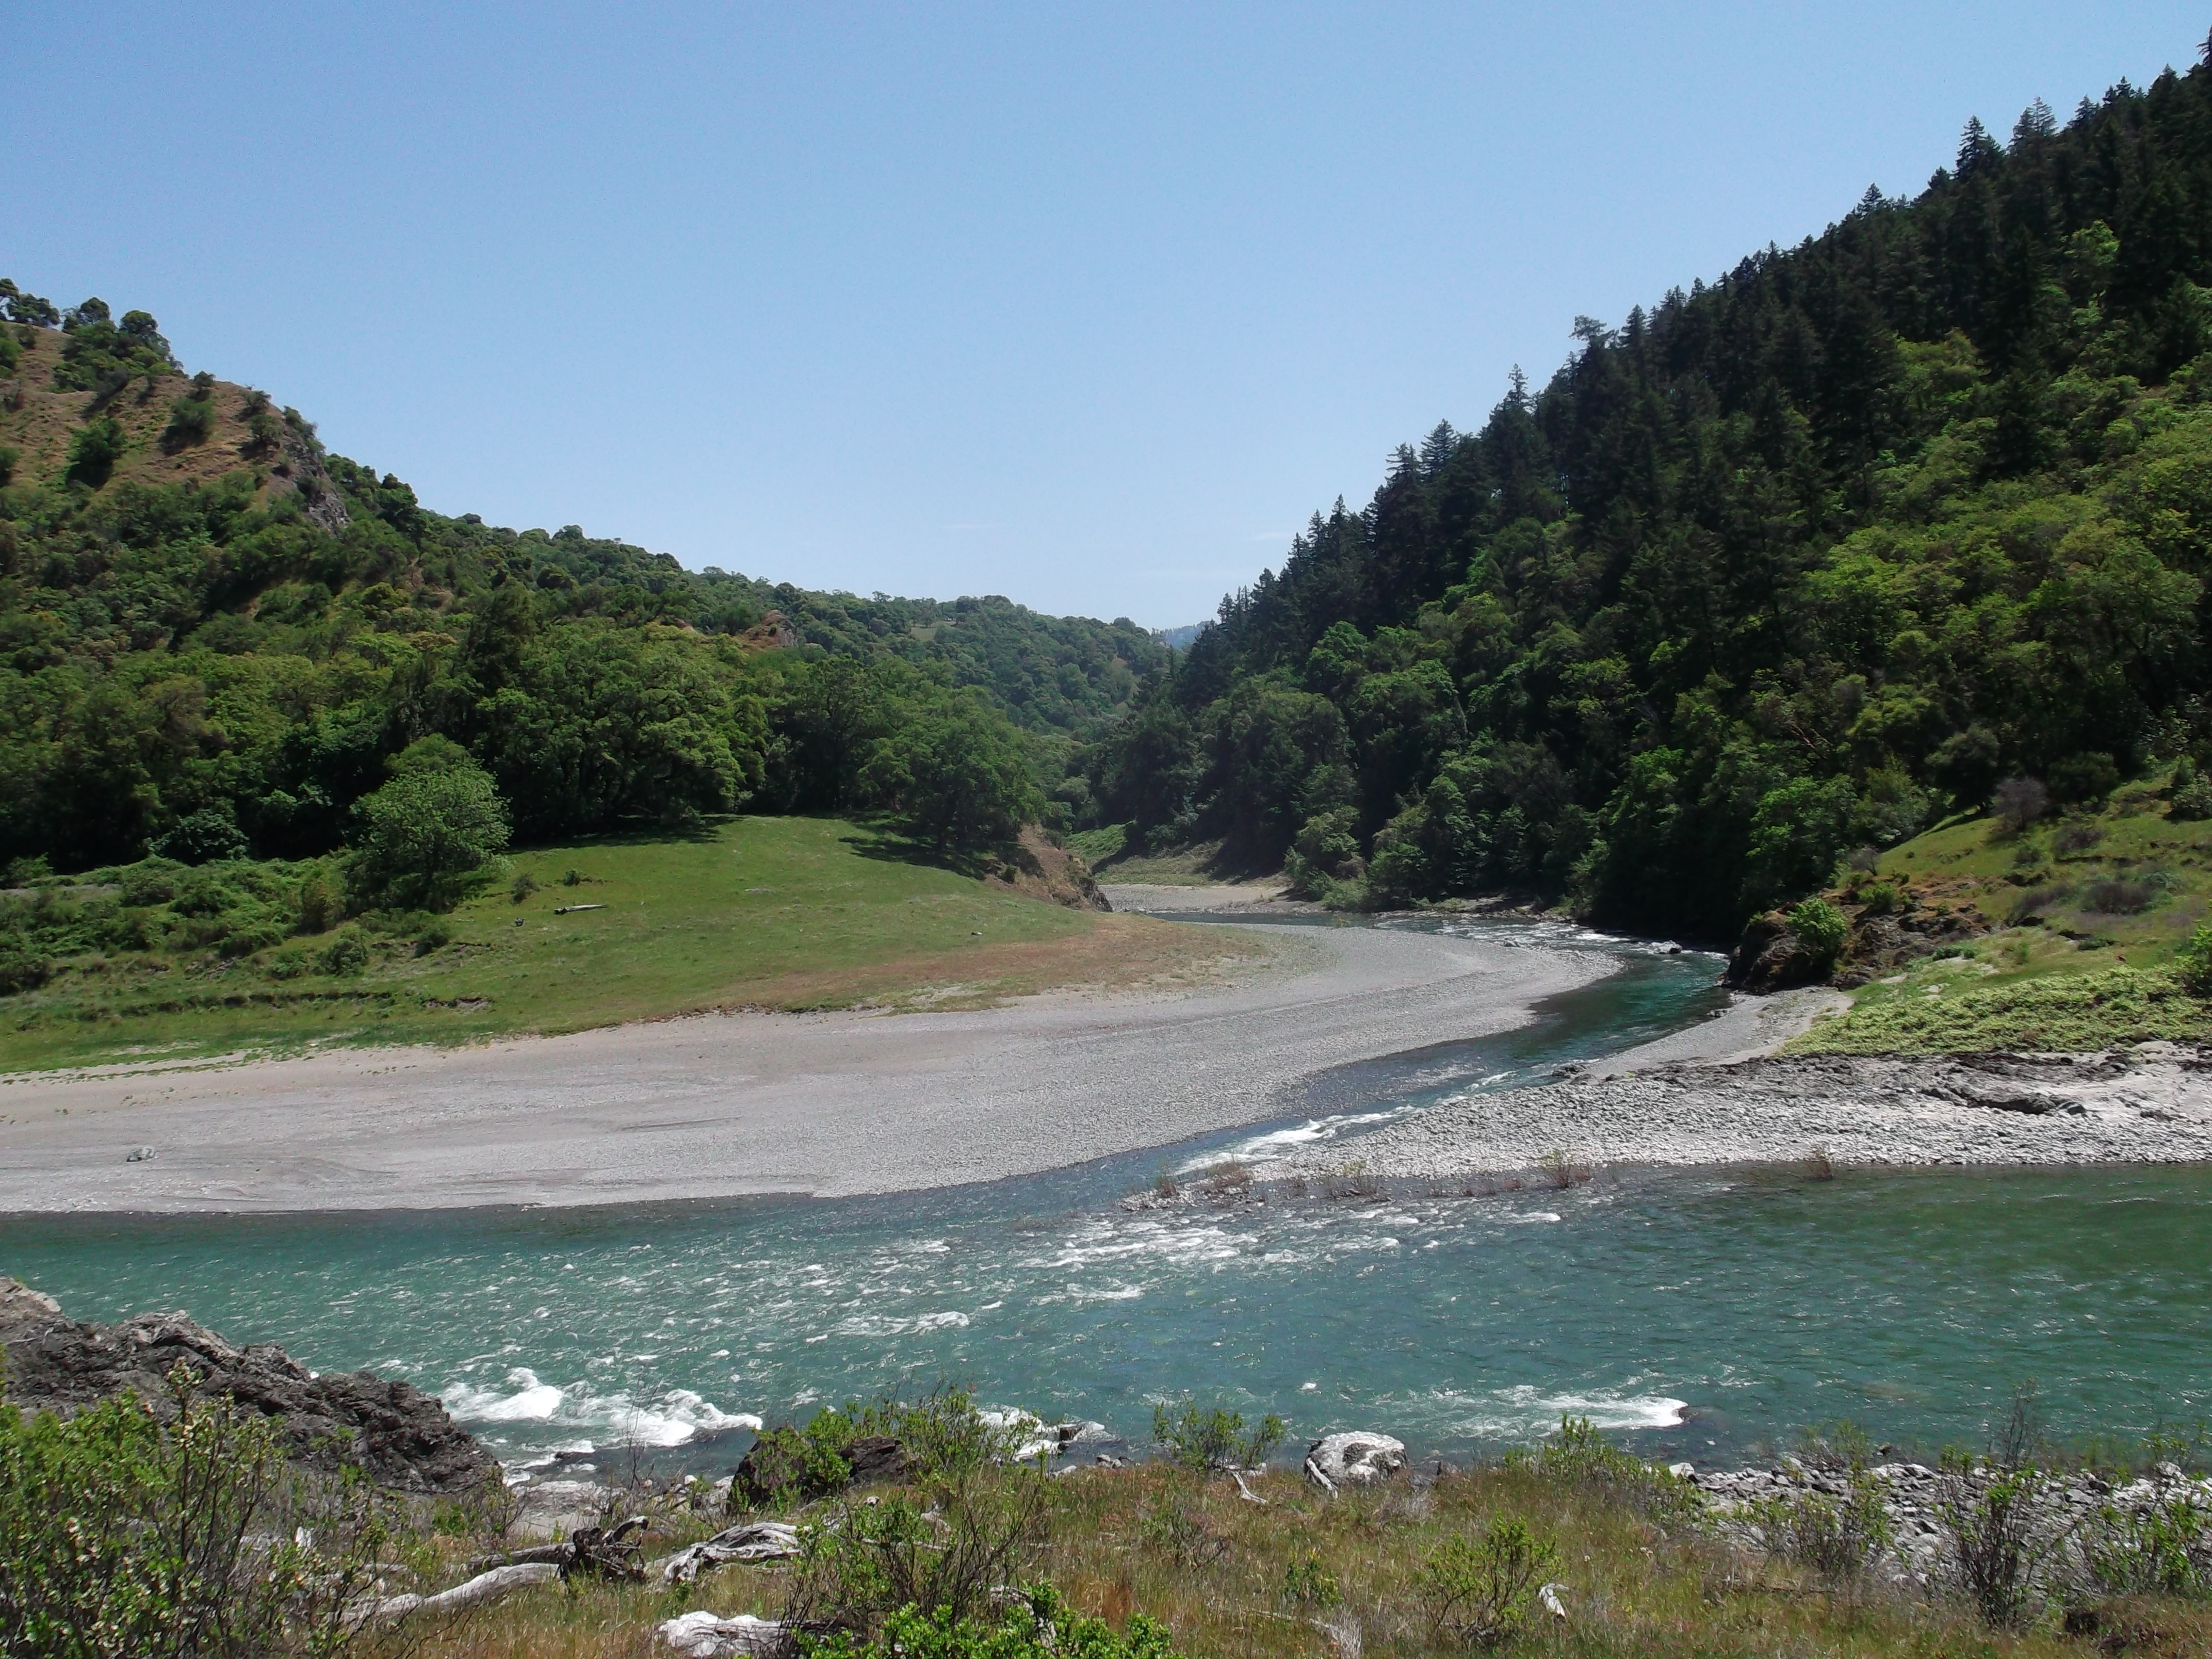 The North Fork of the Eel River joins the Main Fork, Mendocino County. (photo by D. Speredelozzi)